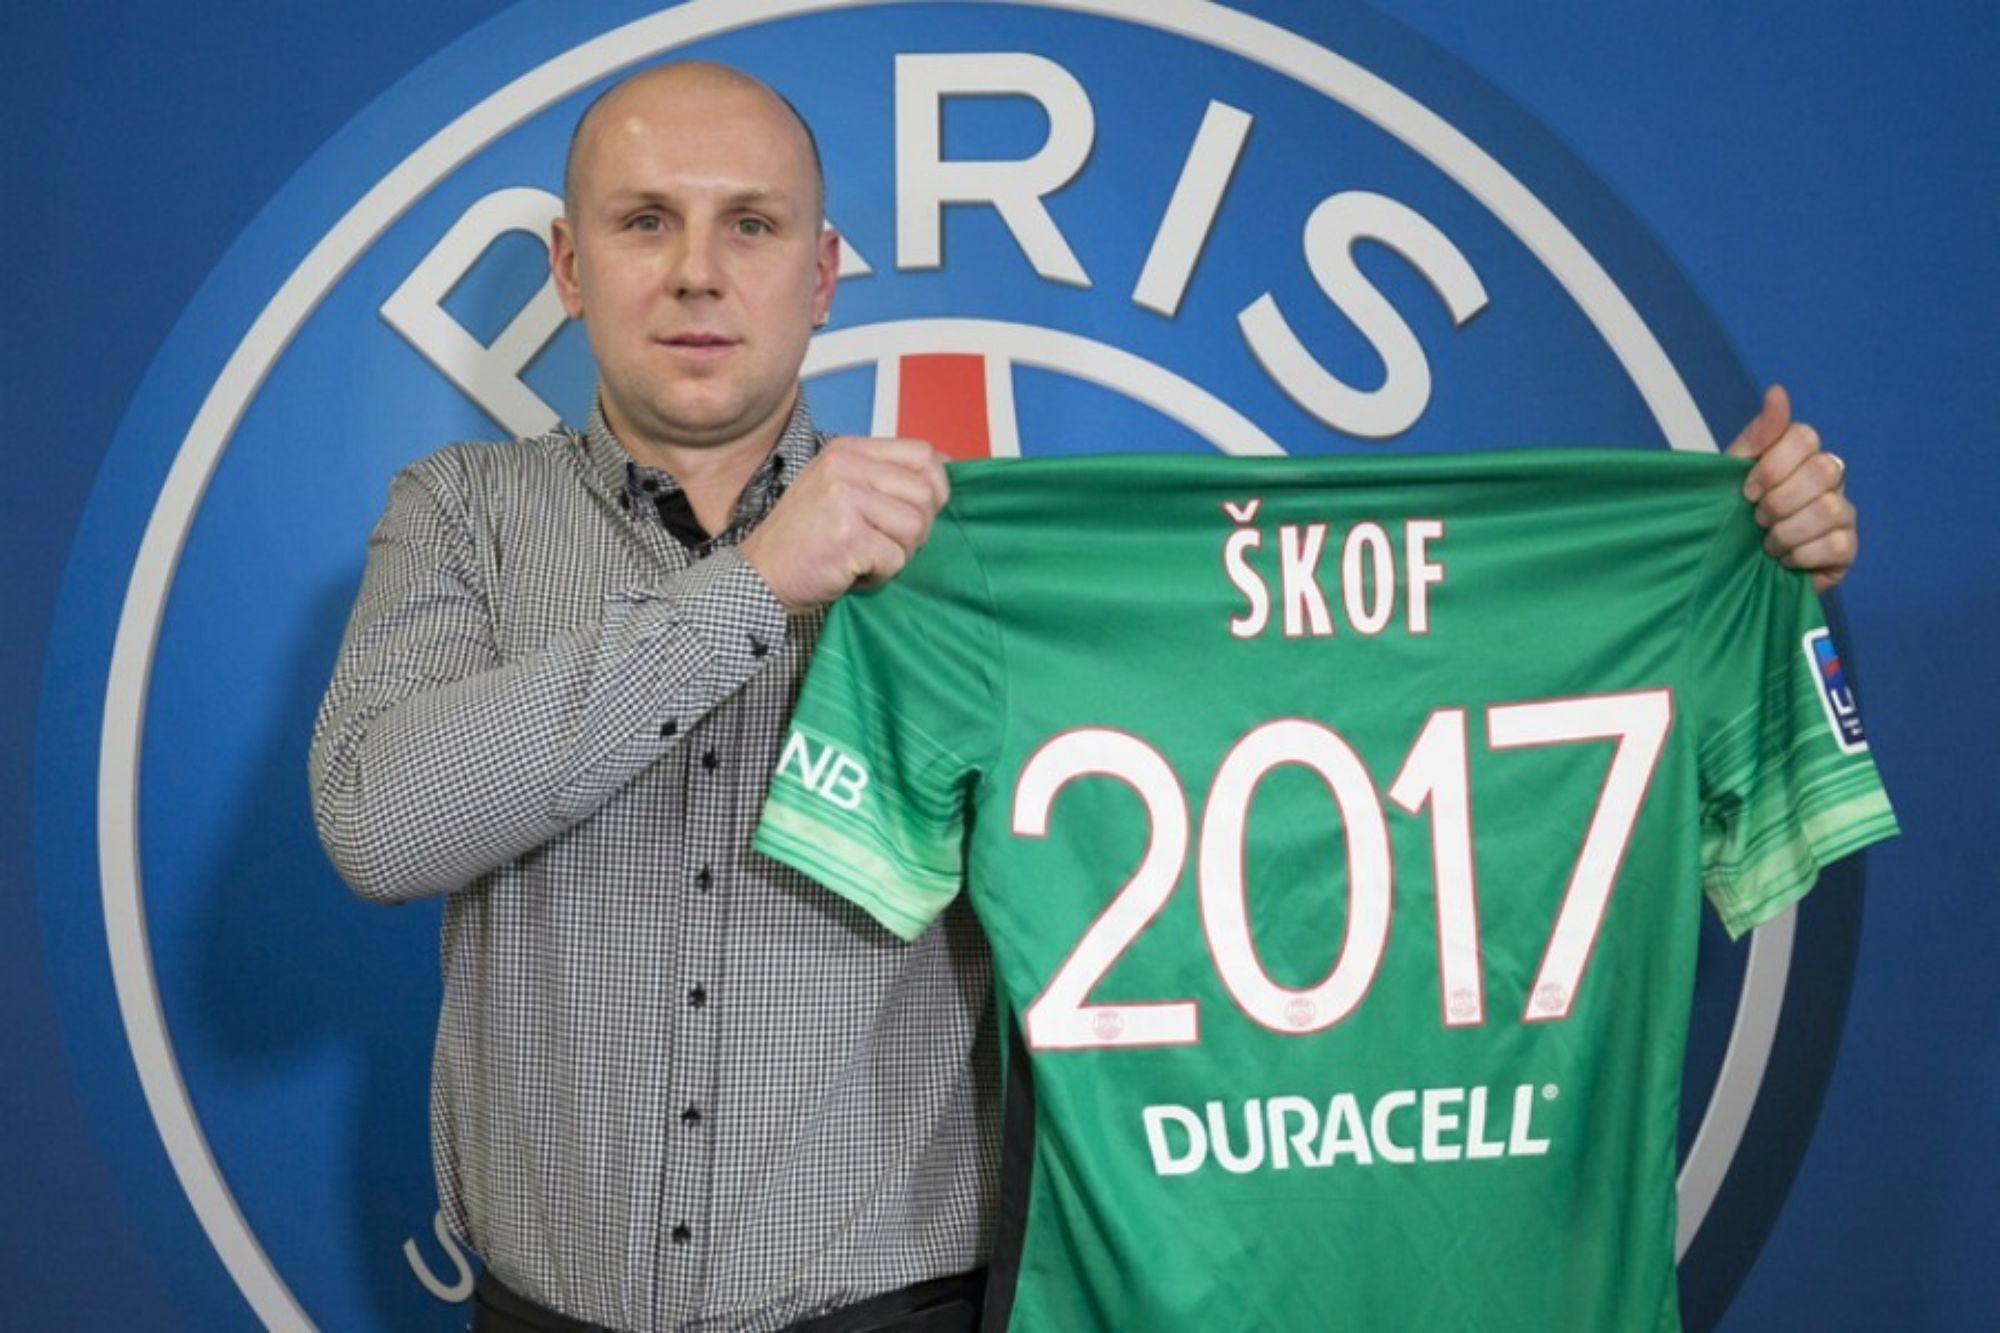 Hand- Gorazd Skof rejoint les rangs du Paris Saint-Germain